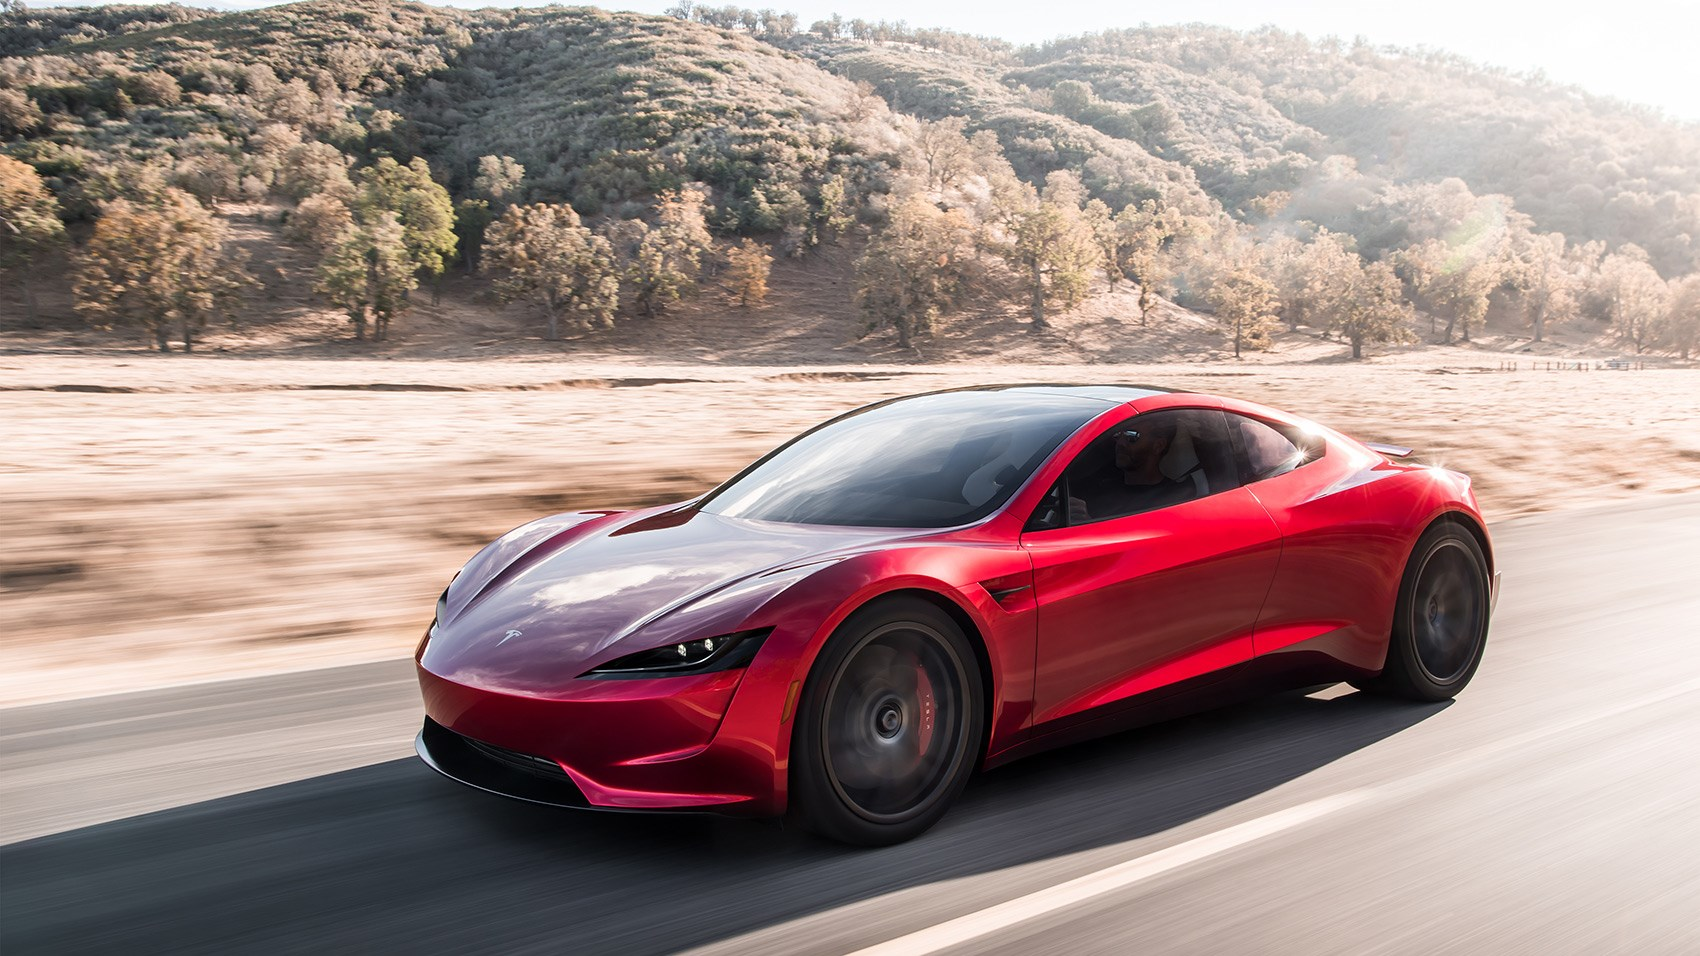 New Tesla Roadster Electric Hypercar Spotted On The Road